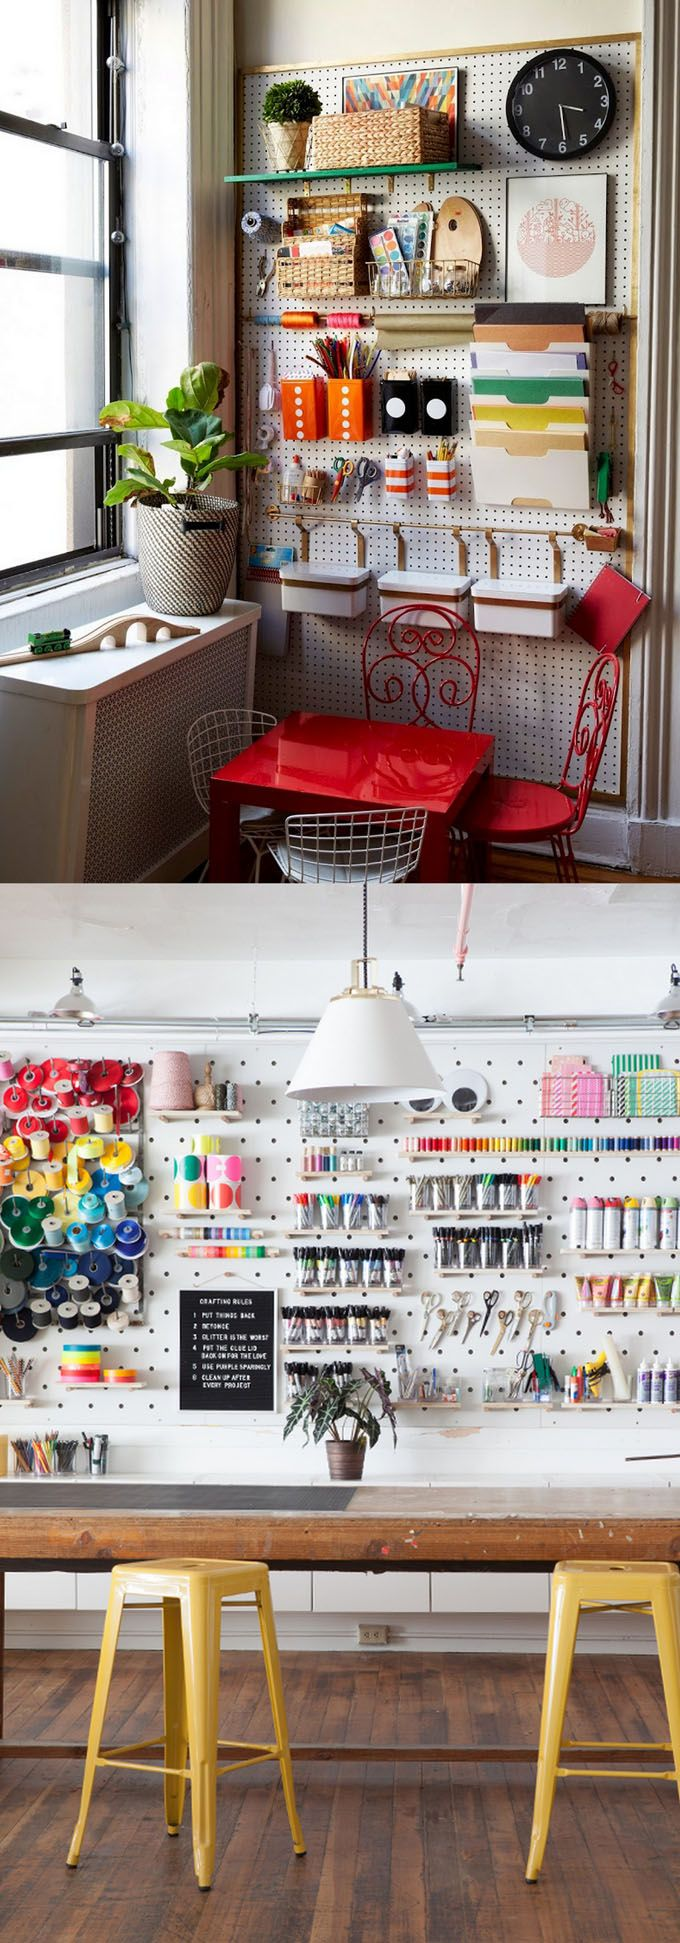 21 Inspiring Workshop and Craft Room Ideas for DIY Creatives #craftroomideas